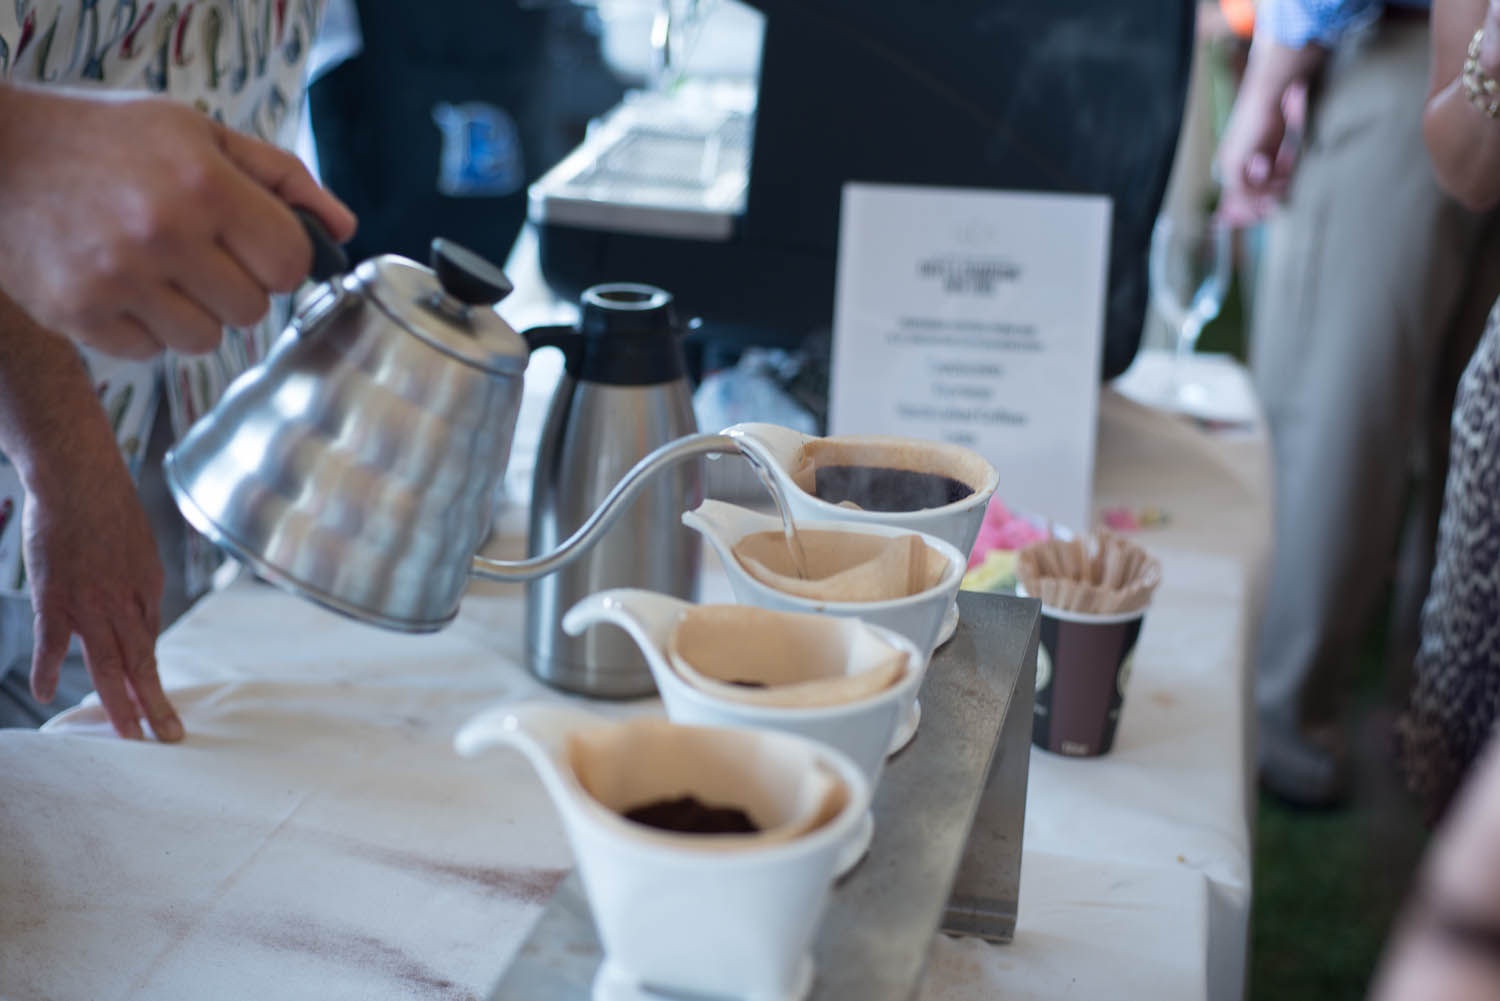 Handcrafted coffees from Royal Cup Coffee